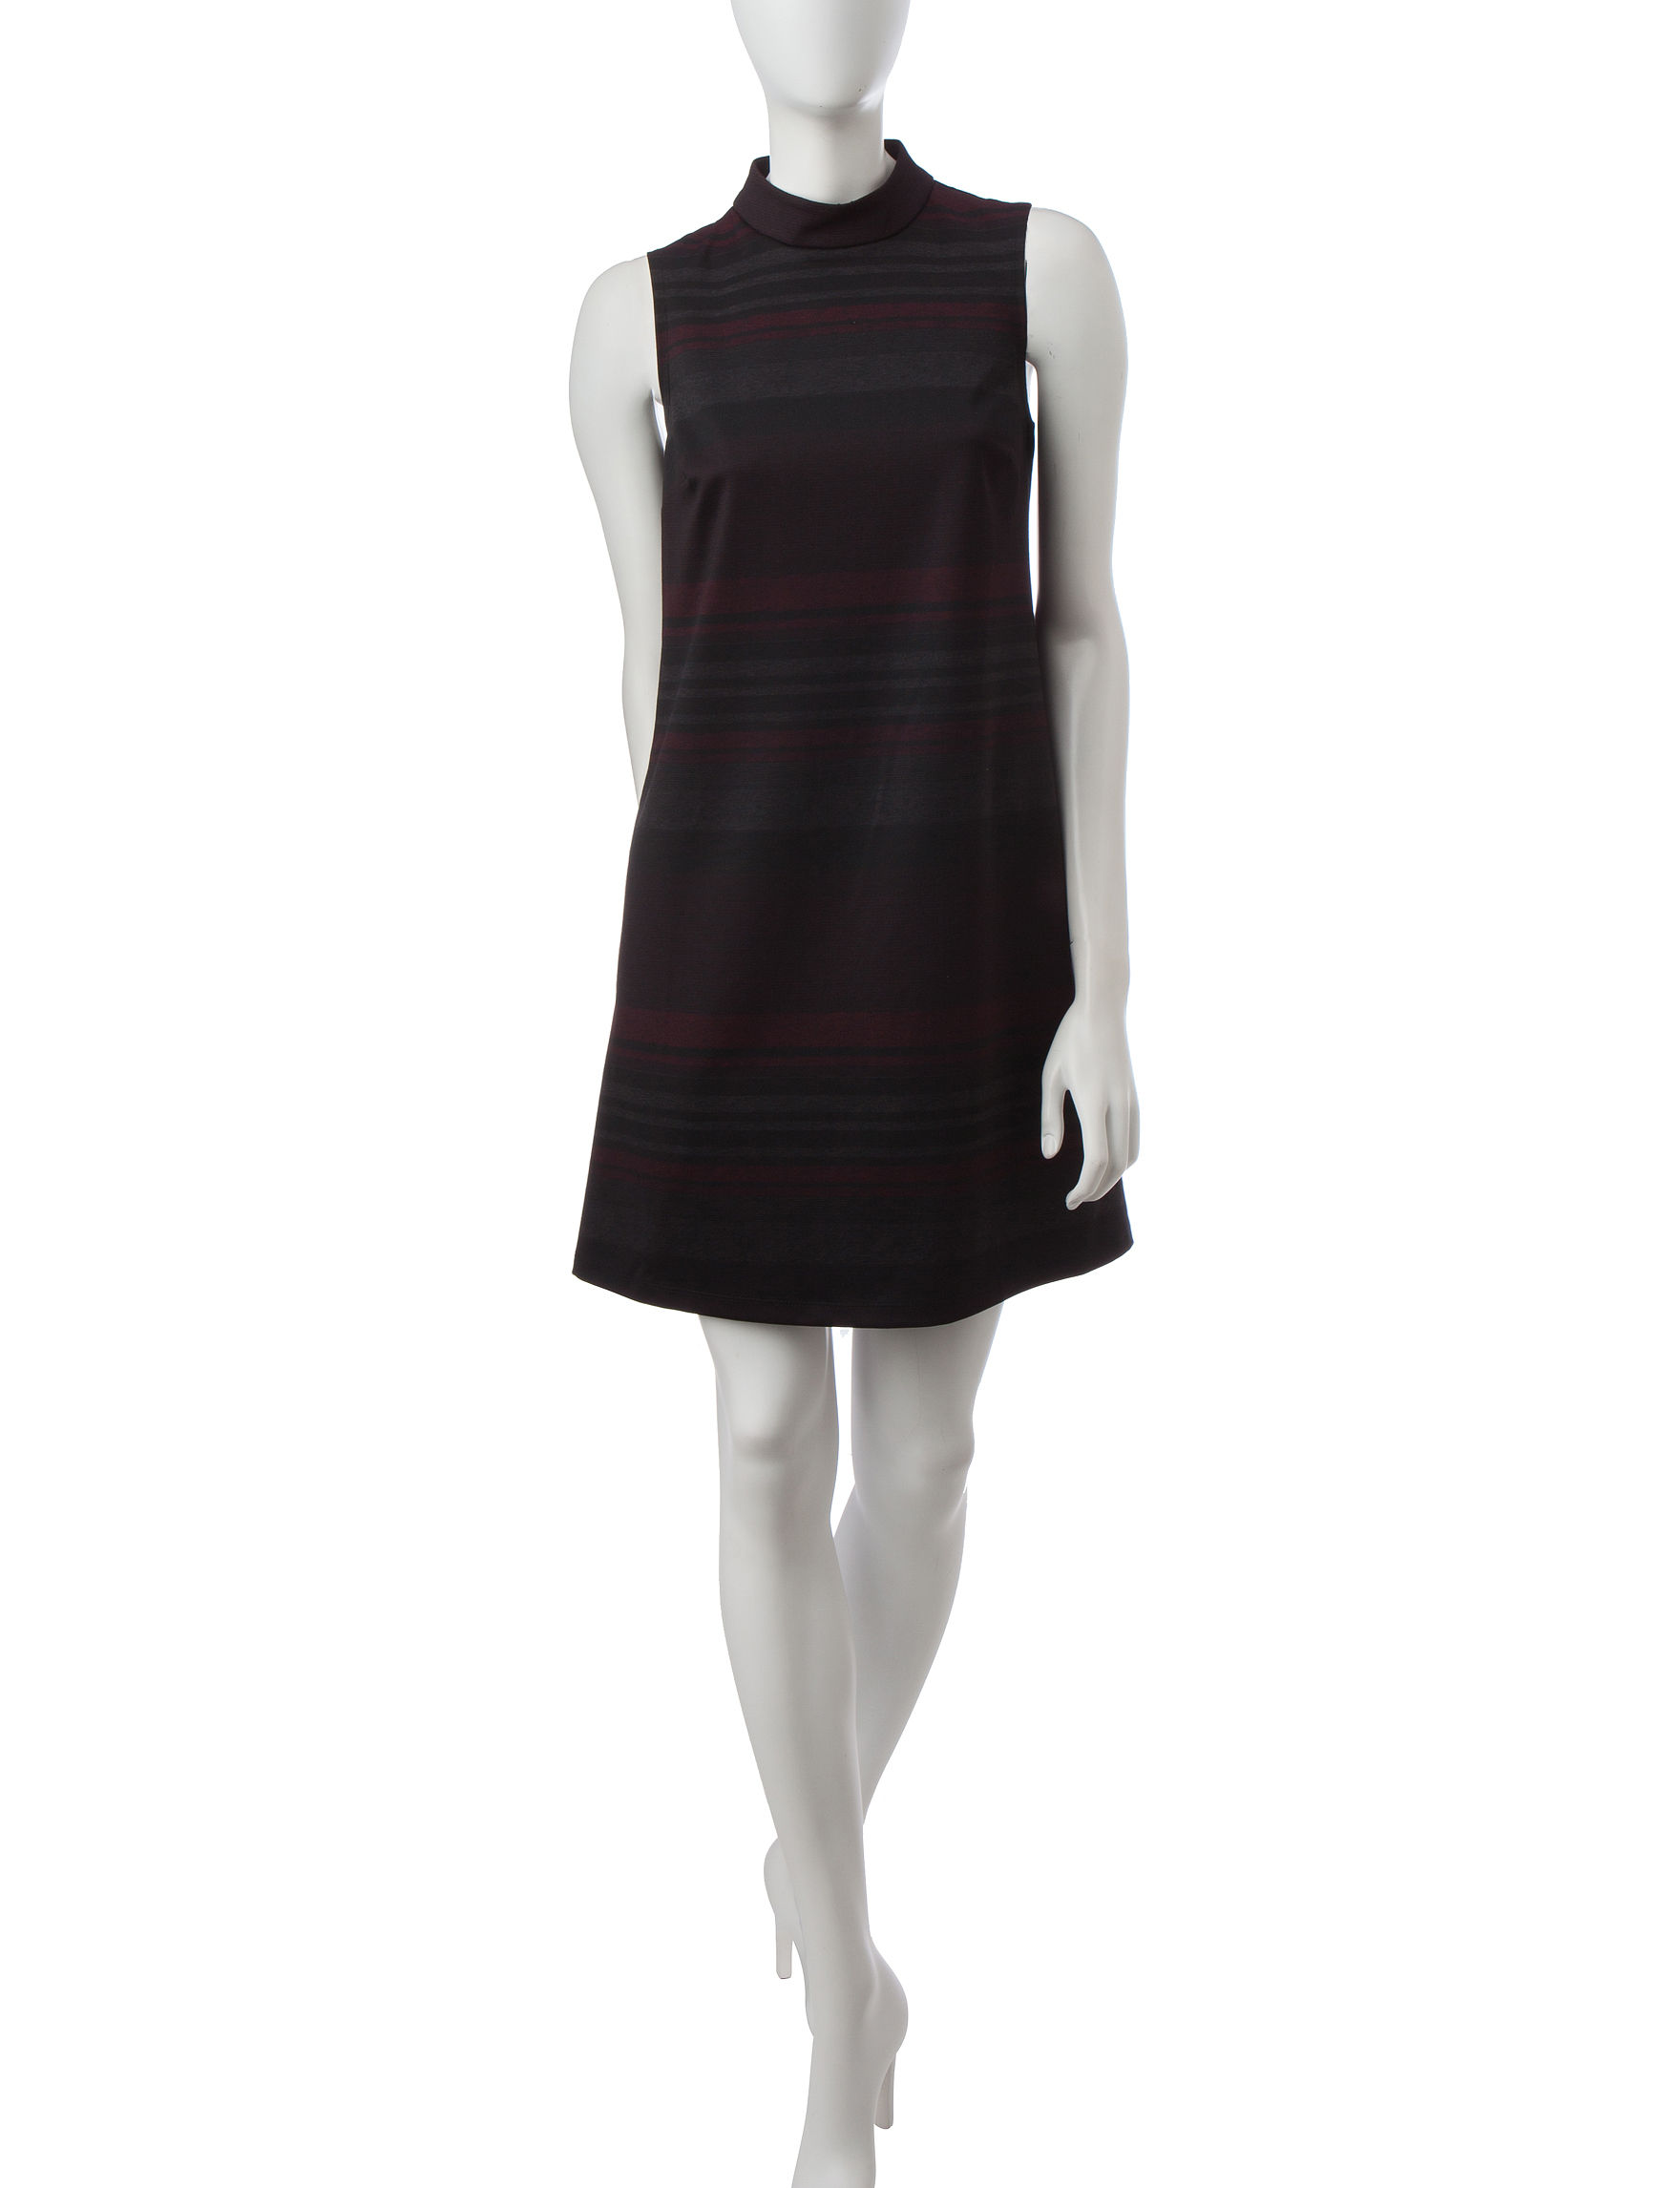 A. Byer Black Everyday & Casual Shift Dresses